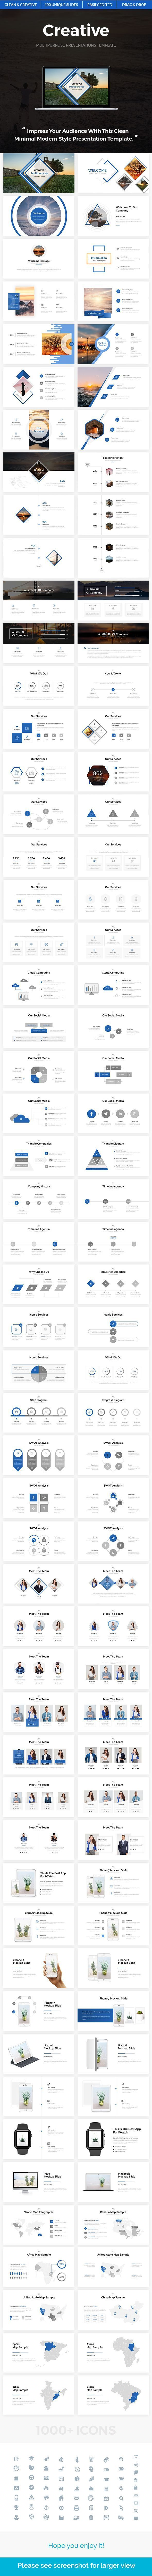 Creative - Multipurpose Powerpoint Template - Business PowerPoint Templates